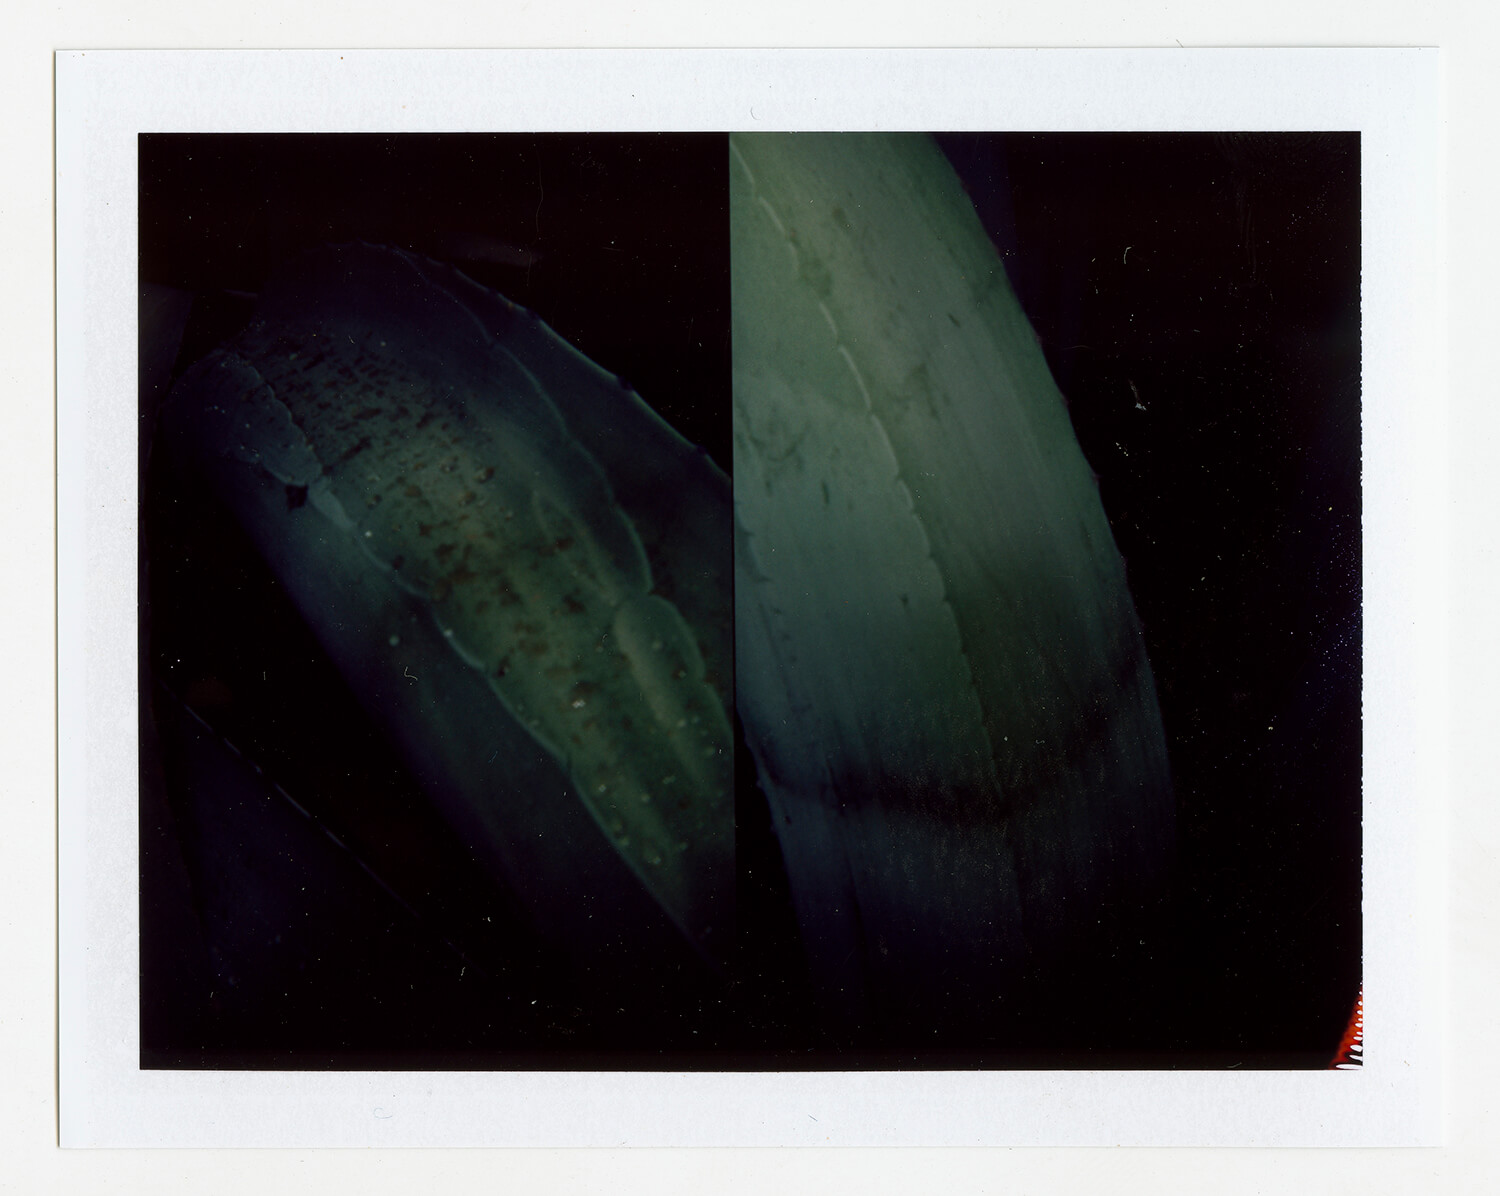 I.D.068, The Polaroid Revolutionary Workers, 2013, Polaroid Picture, 107mm x 86mm